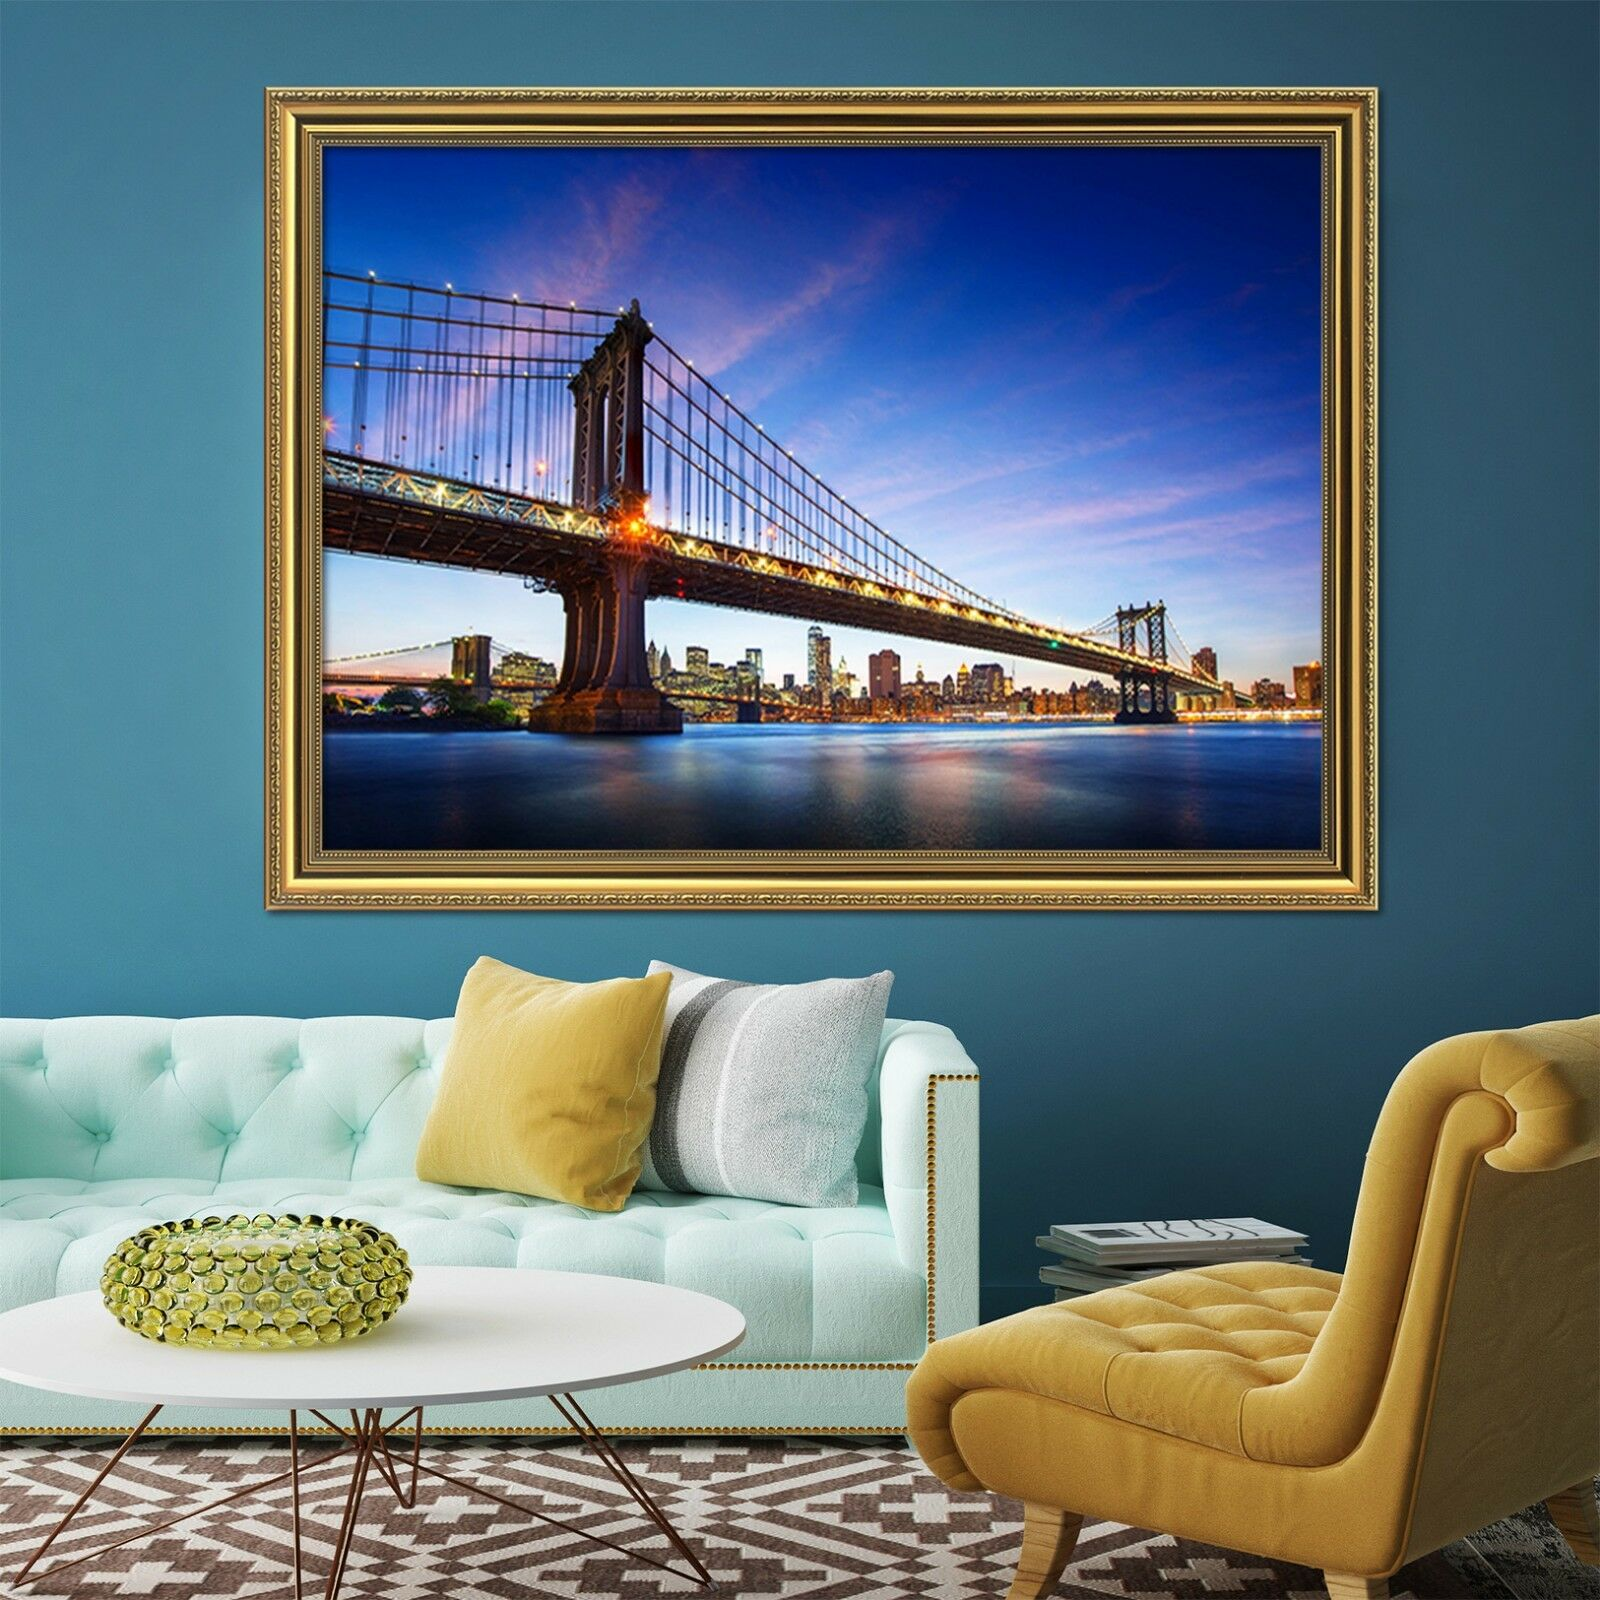 3D City Bridge Scenery 2 Framed Poster Home Decor Print Painting Art WALLPAPER